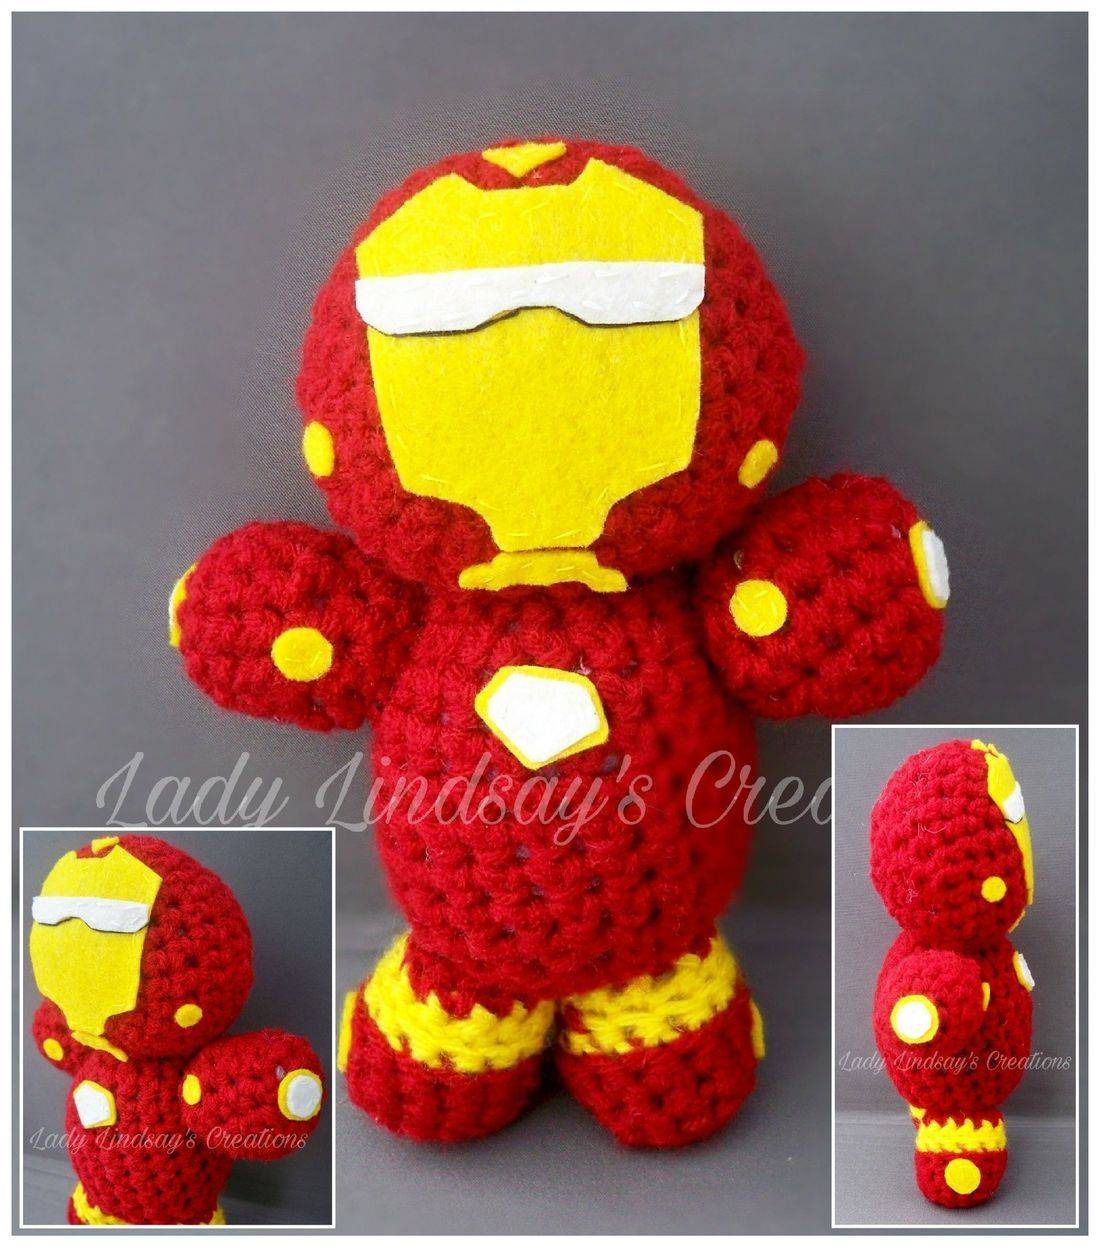 Iron Man, Tony Stark, Stark Enterprises, Amigurumi, plush, crochet, handmade, shop small, Etsy, nerd, geek, otaku, anime, manga, comicbook, superhero, avengers